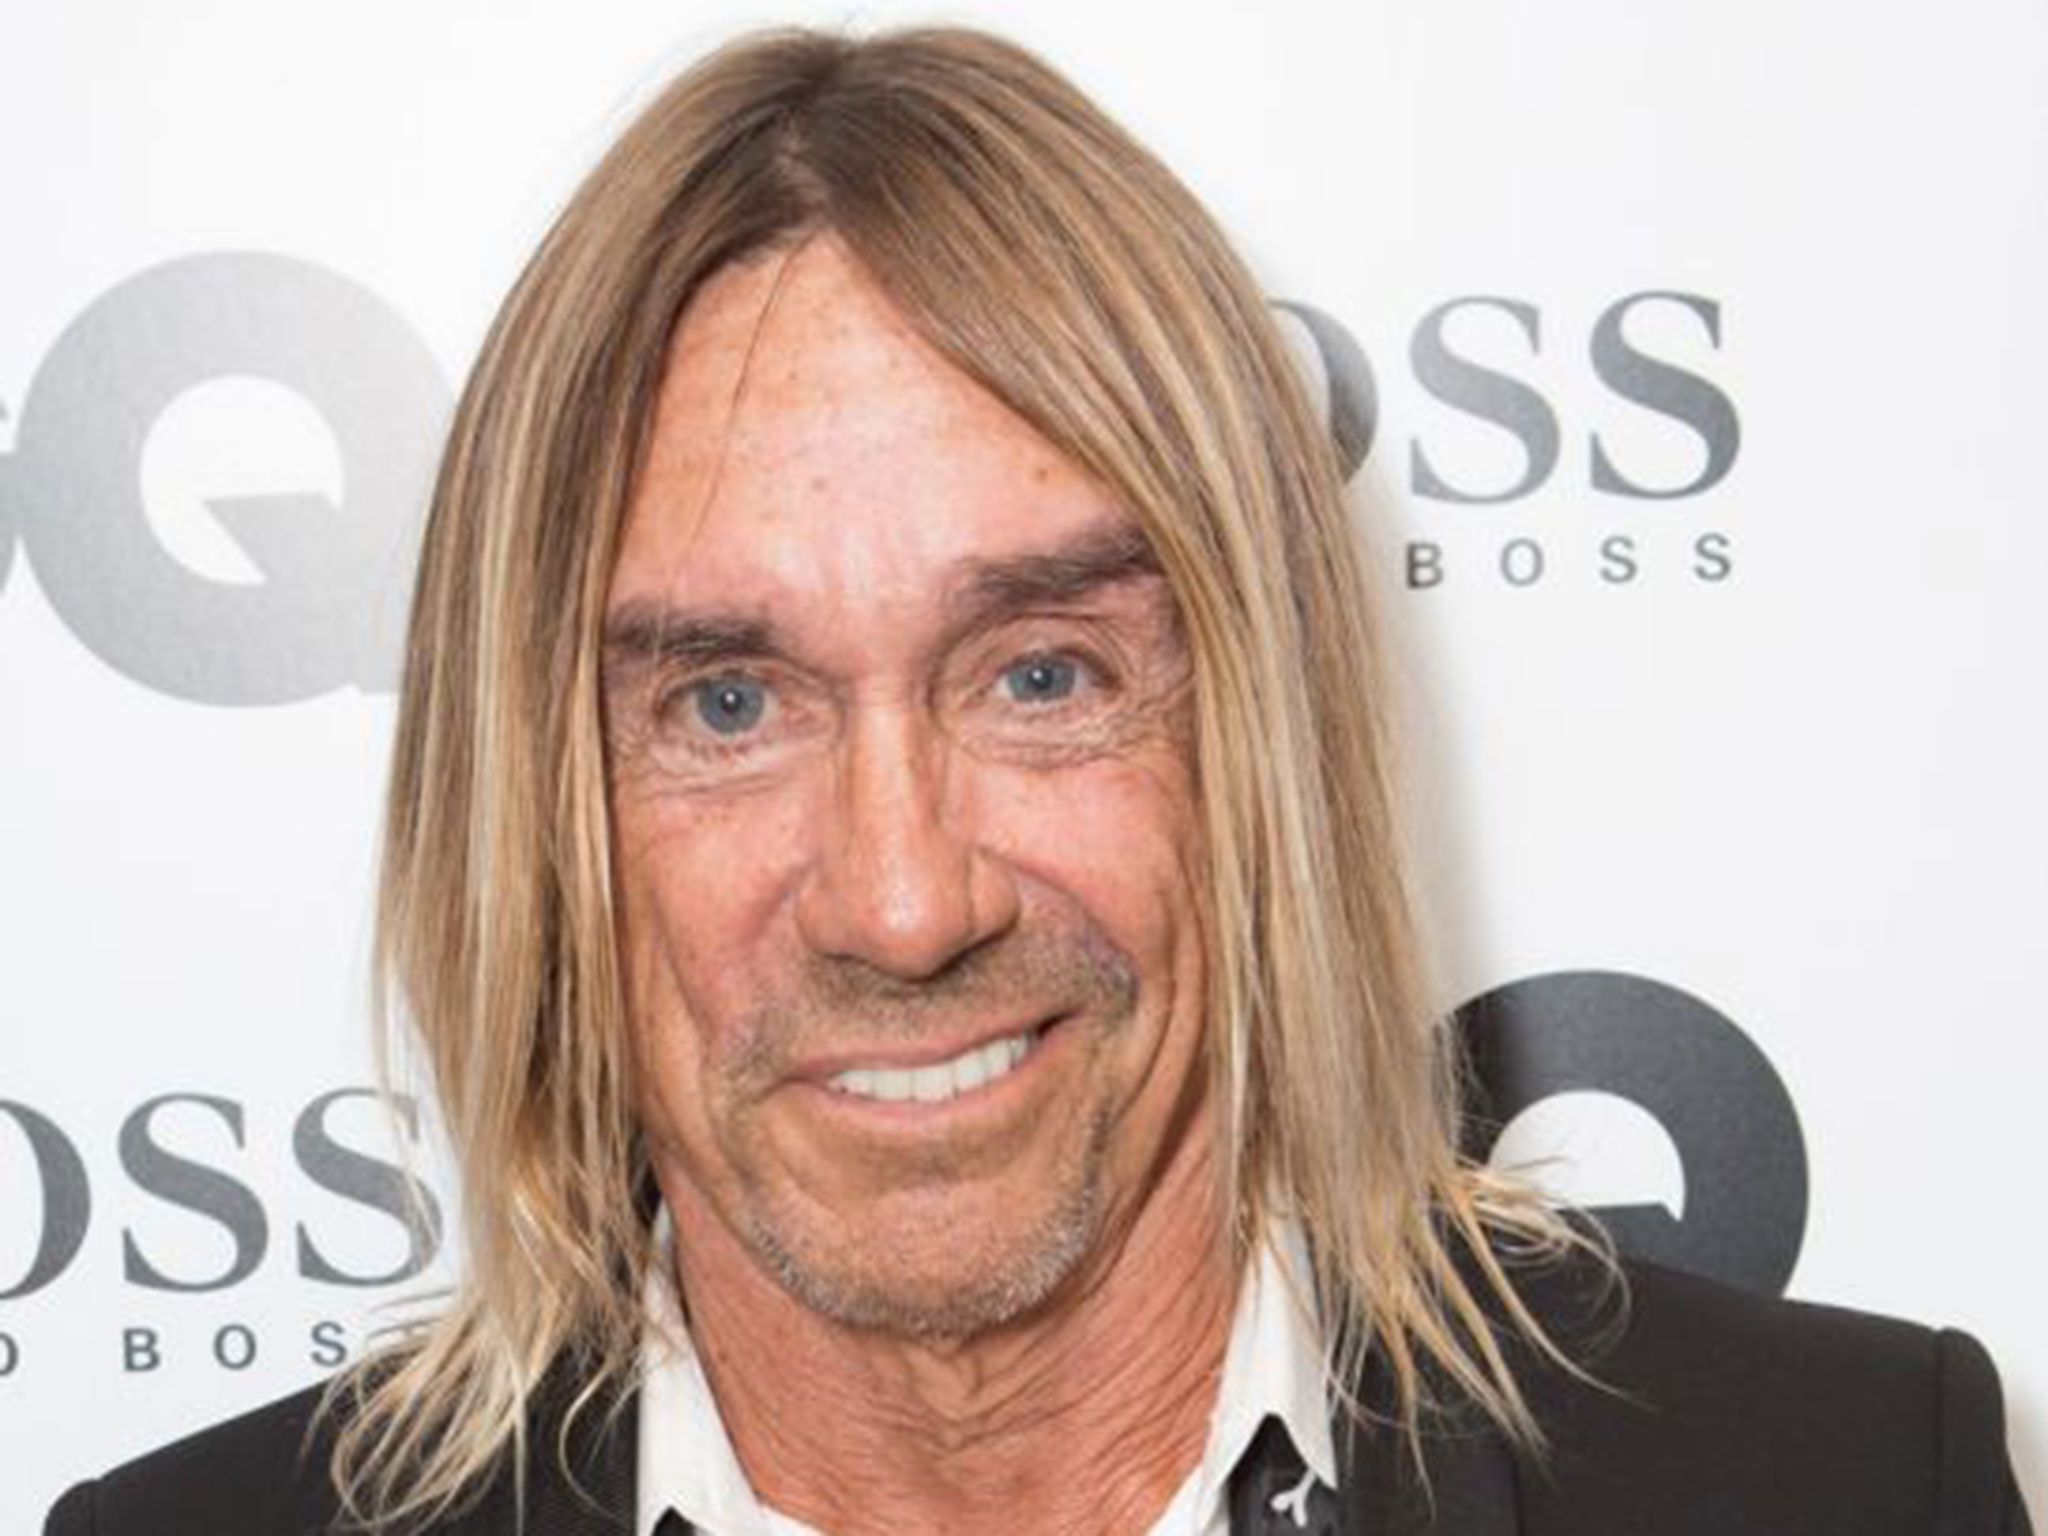 Iggy Pop signs on to give tenth anniversary John Peel lecture - News - Music - The Independent